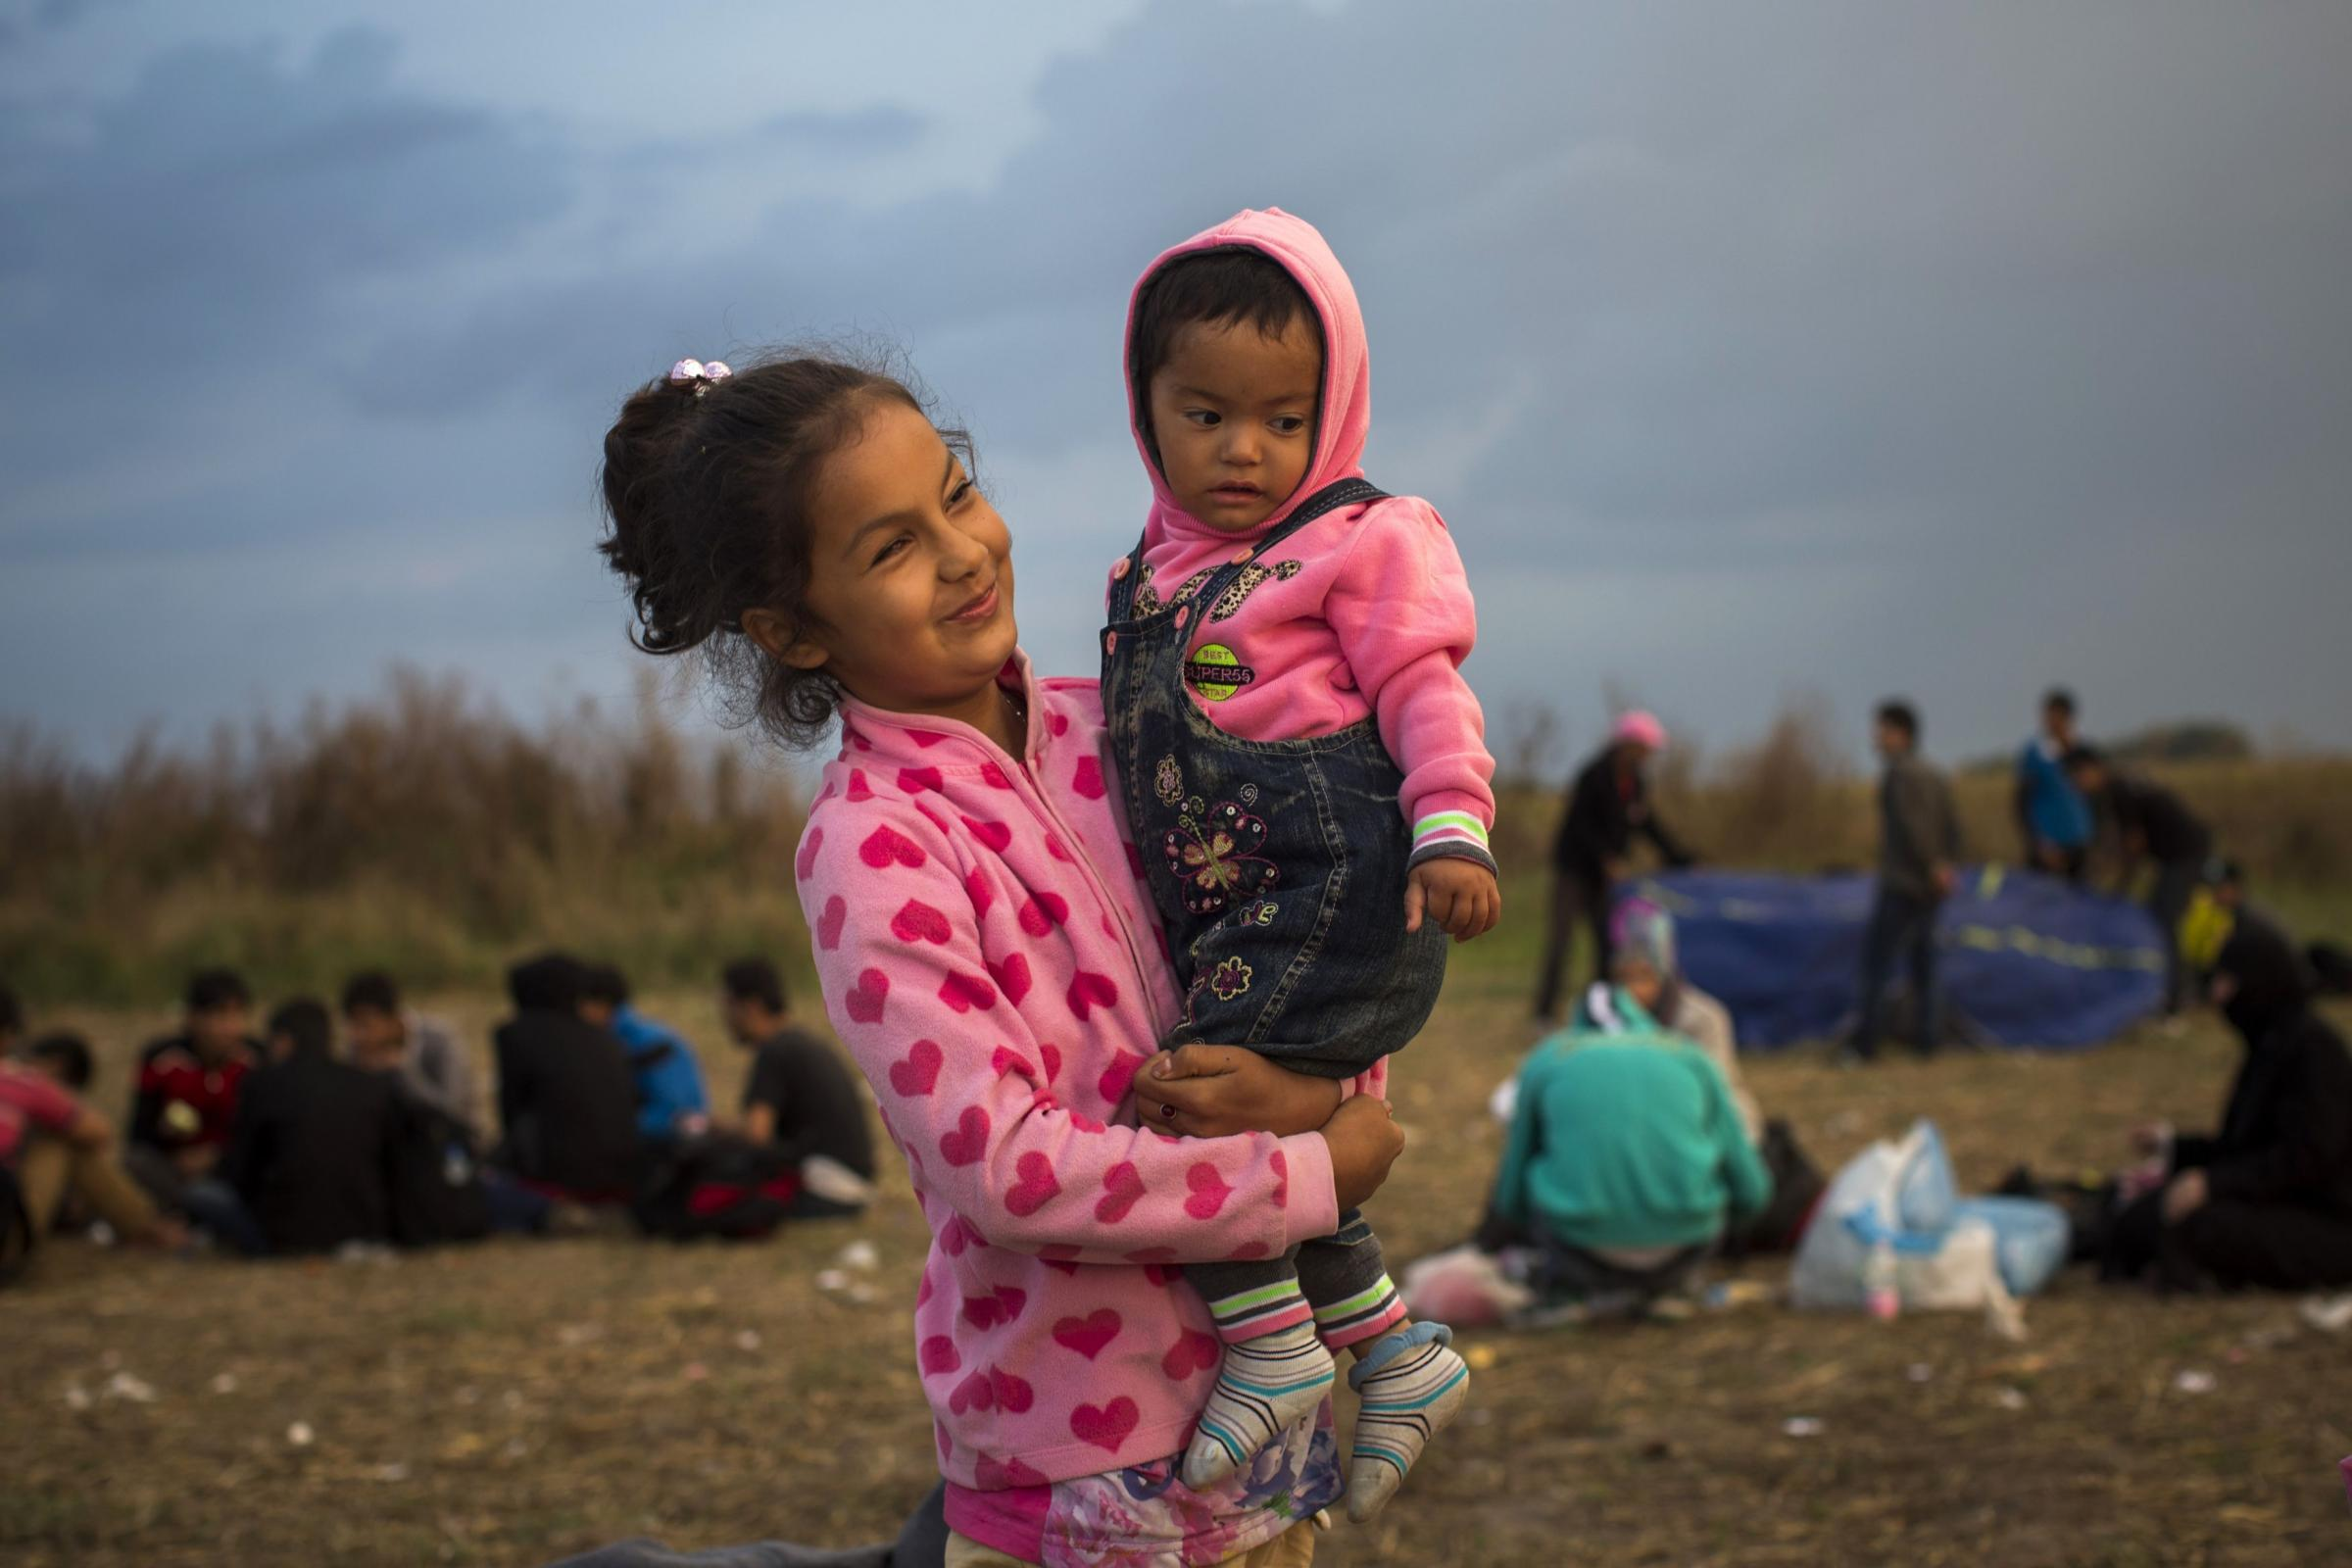 Seeking help: Afghan girls wait at a checkpoint near the Hungarian town of Roszke yesterday after crossing the border from Serbia